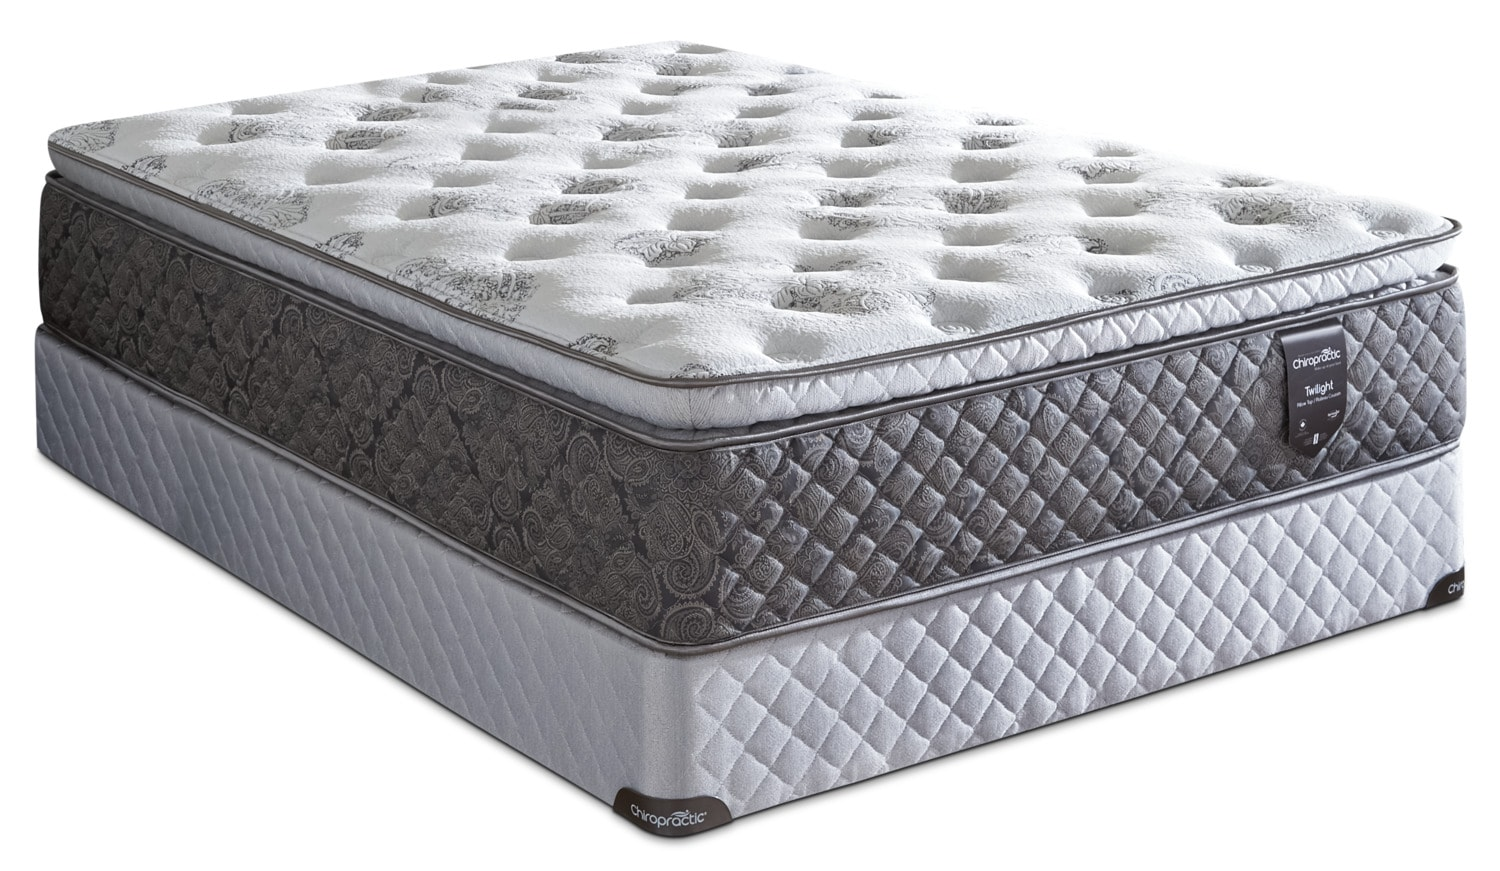 Springwall Chiropractic® Twilight Pillow-Top Luxury Firm Twin Mattress Set